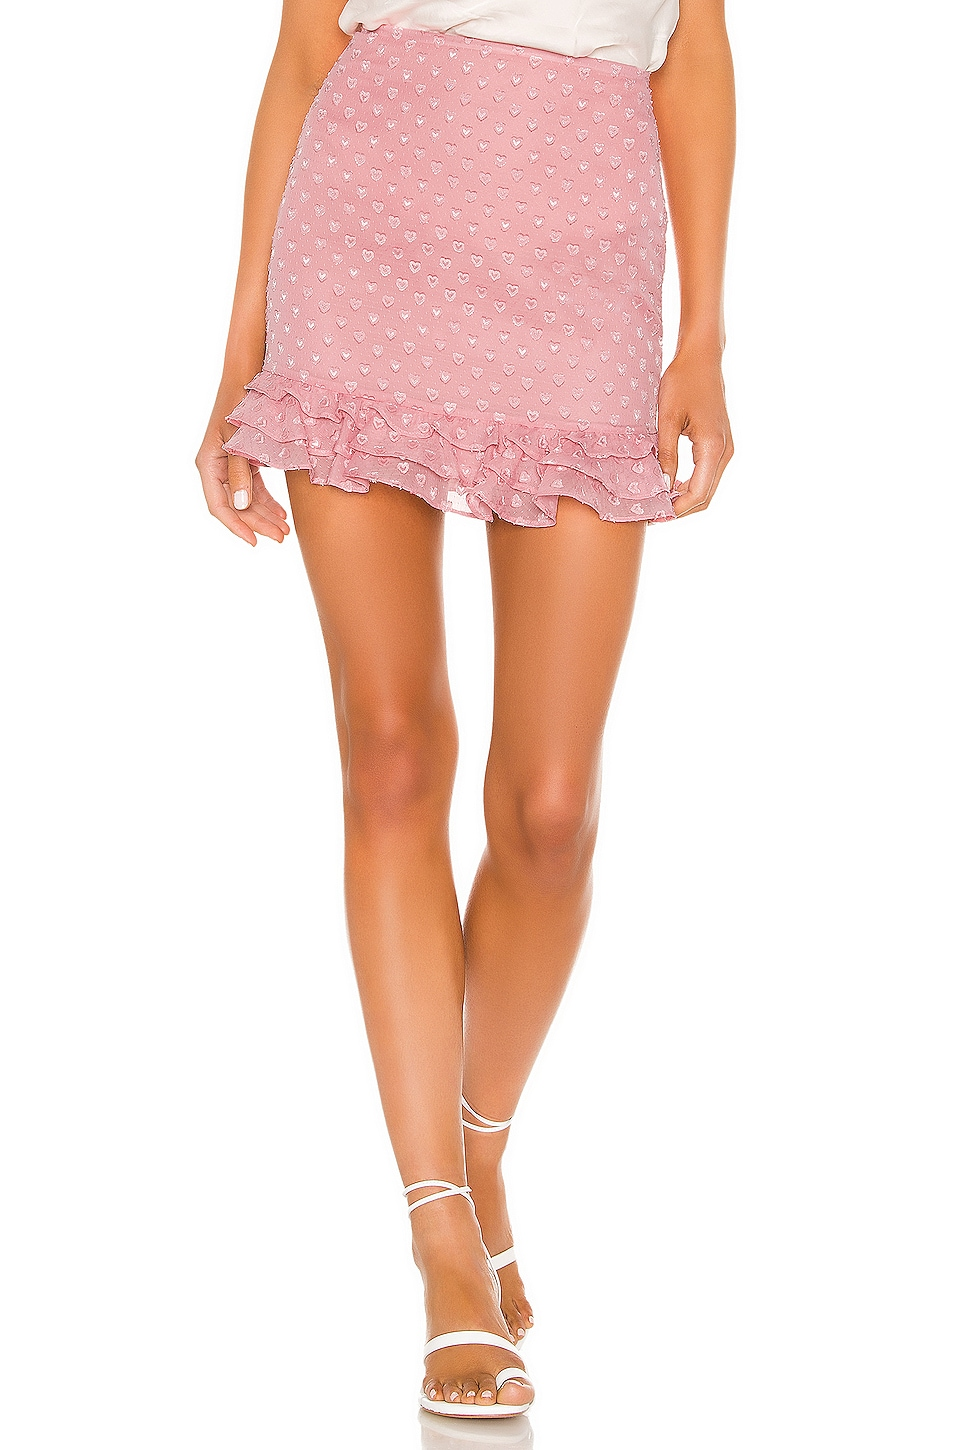 Privacy Please Rose Mini Skirt in Peony Pink